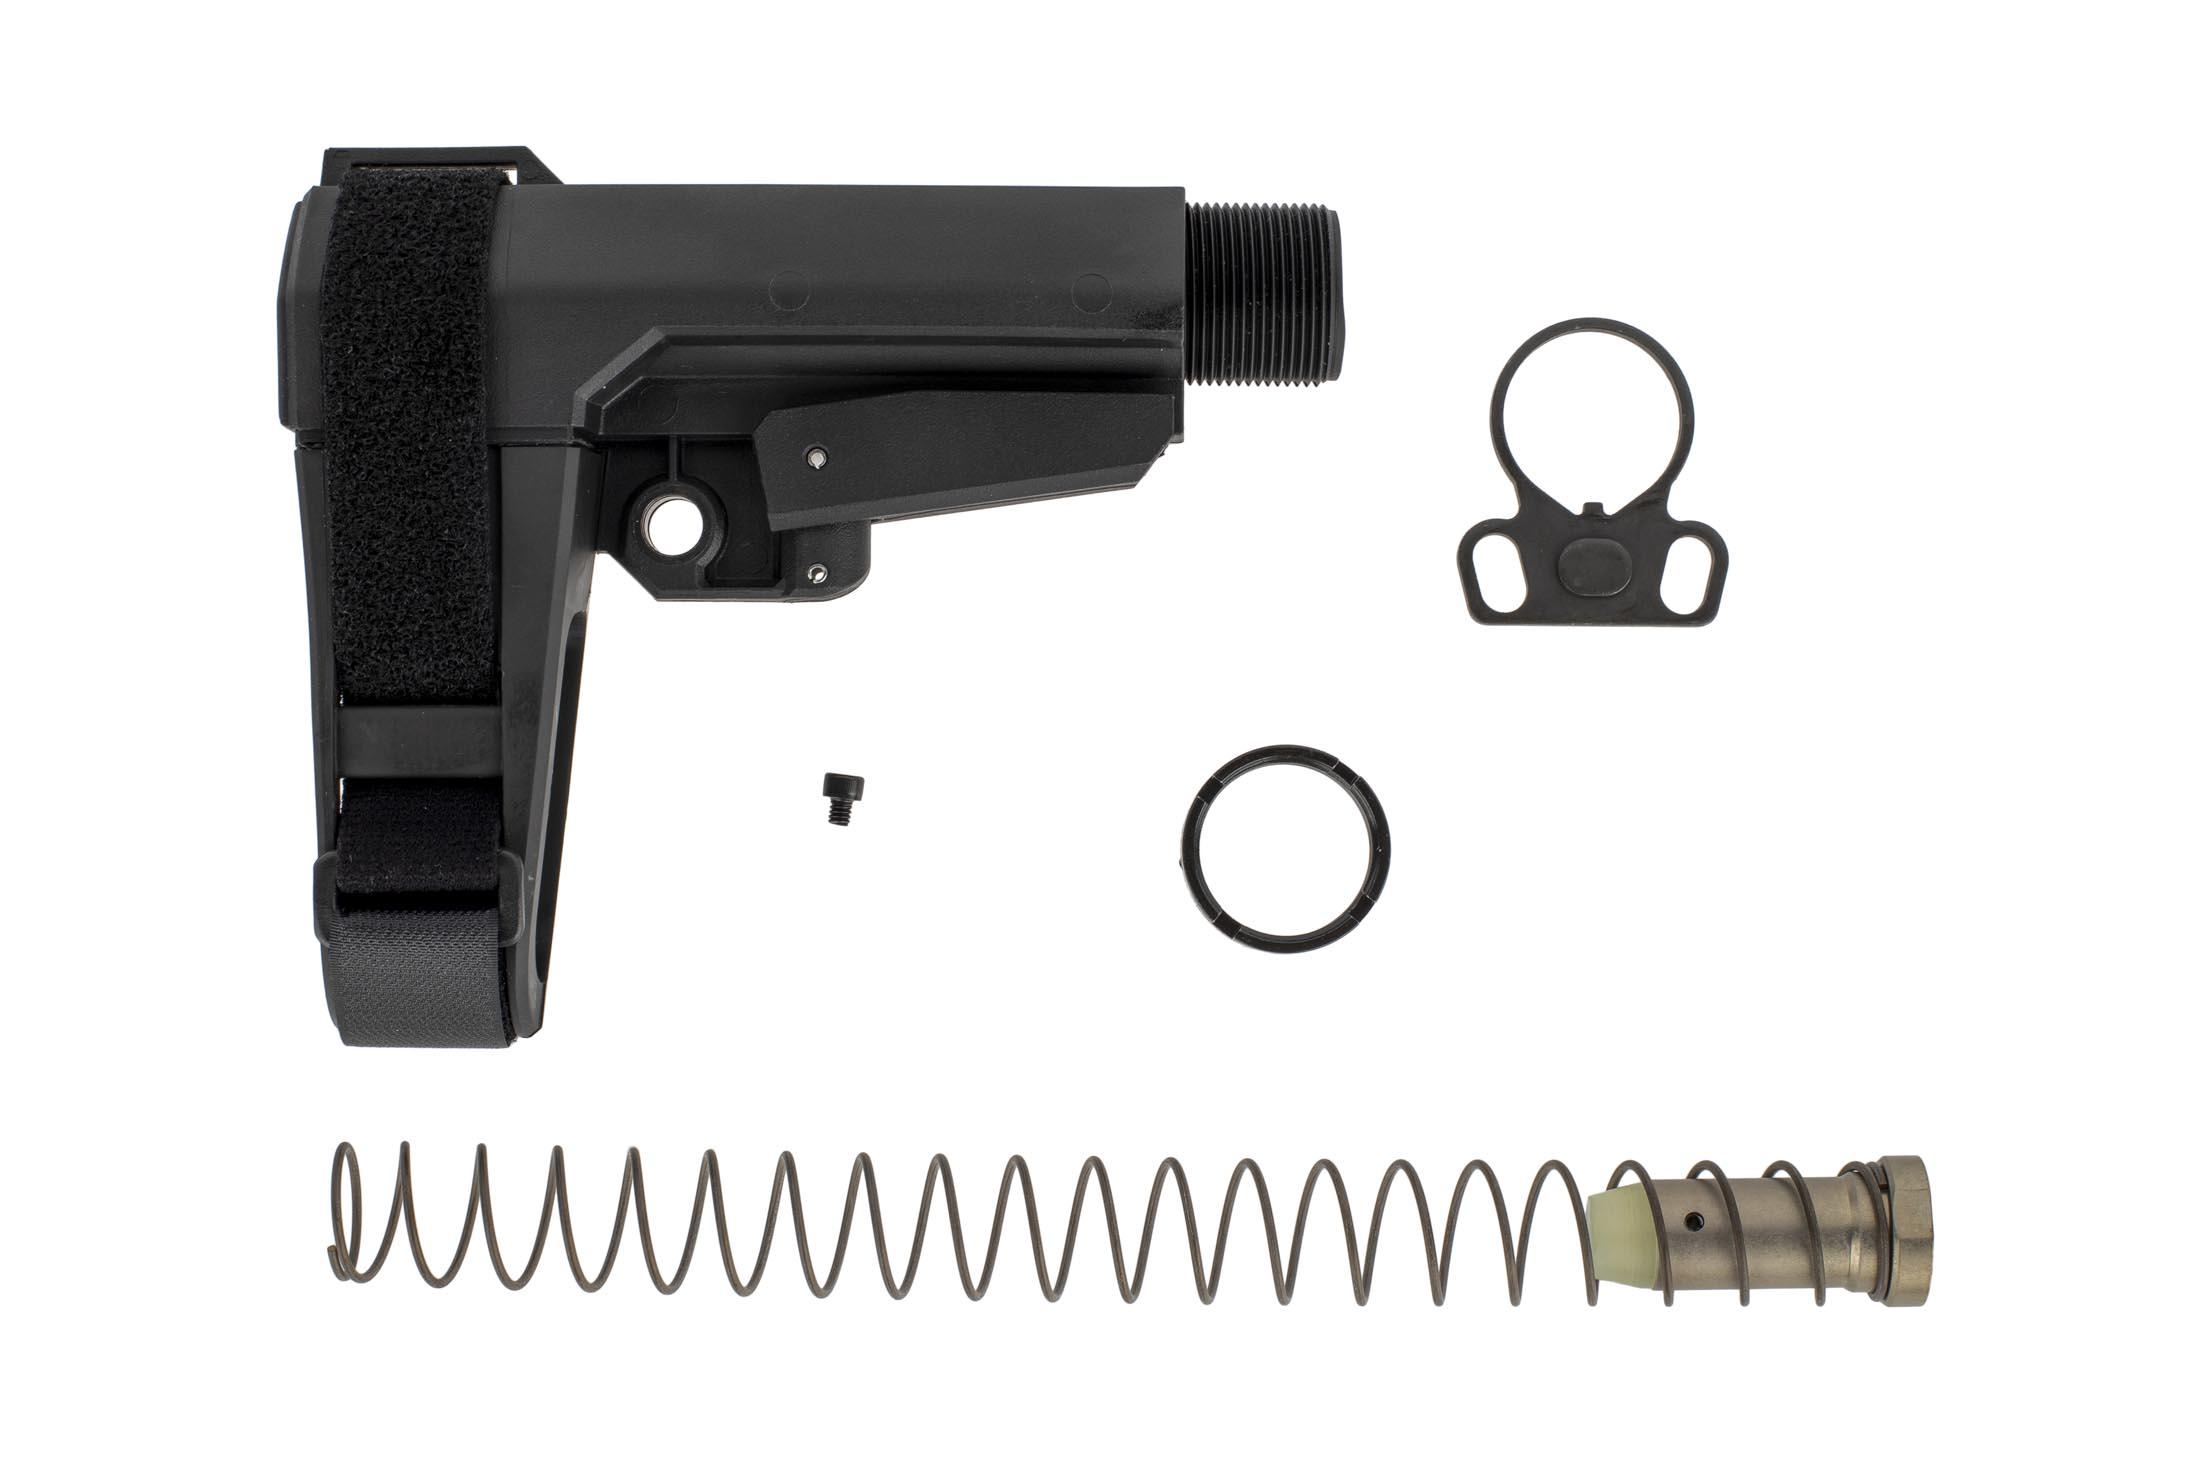 The CMMG Rip Brace CQB kit comes with a proprietary buffer, recoil spring, and end plate